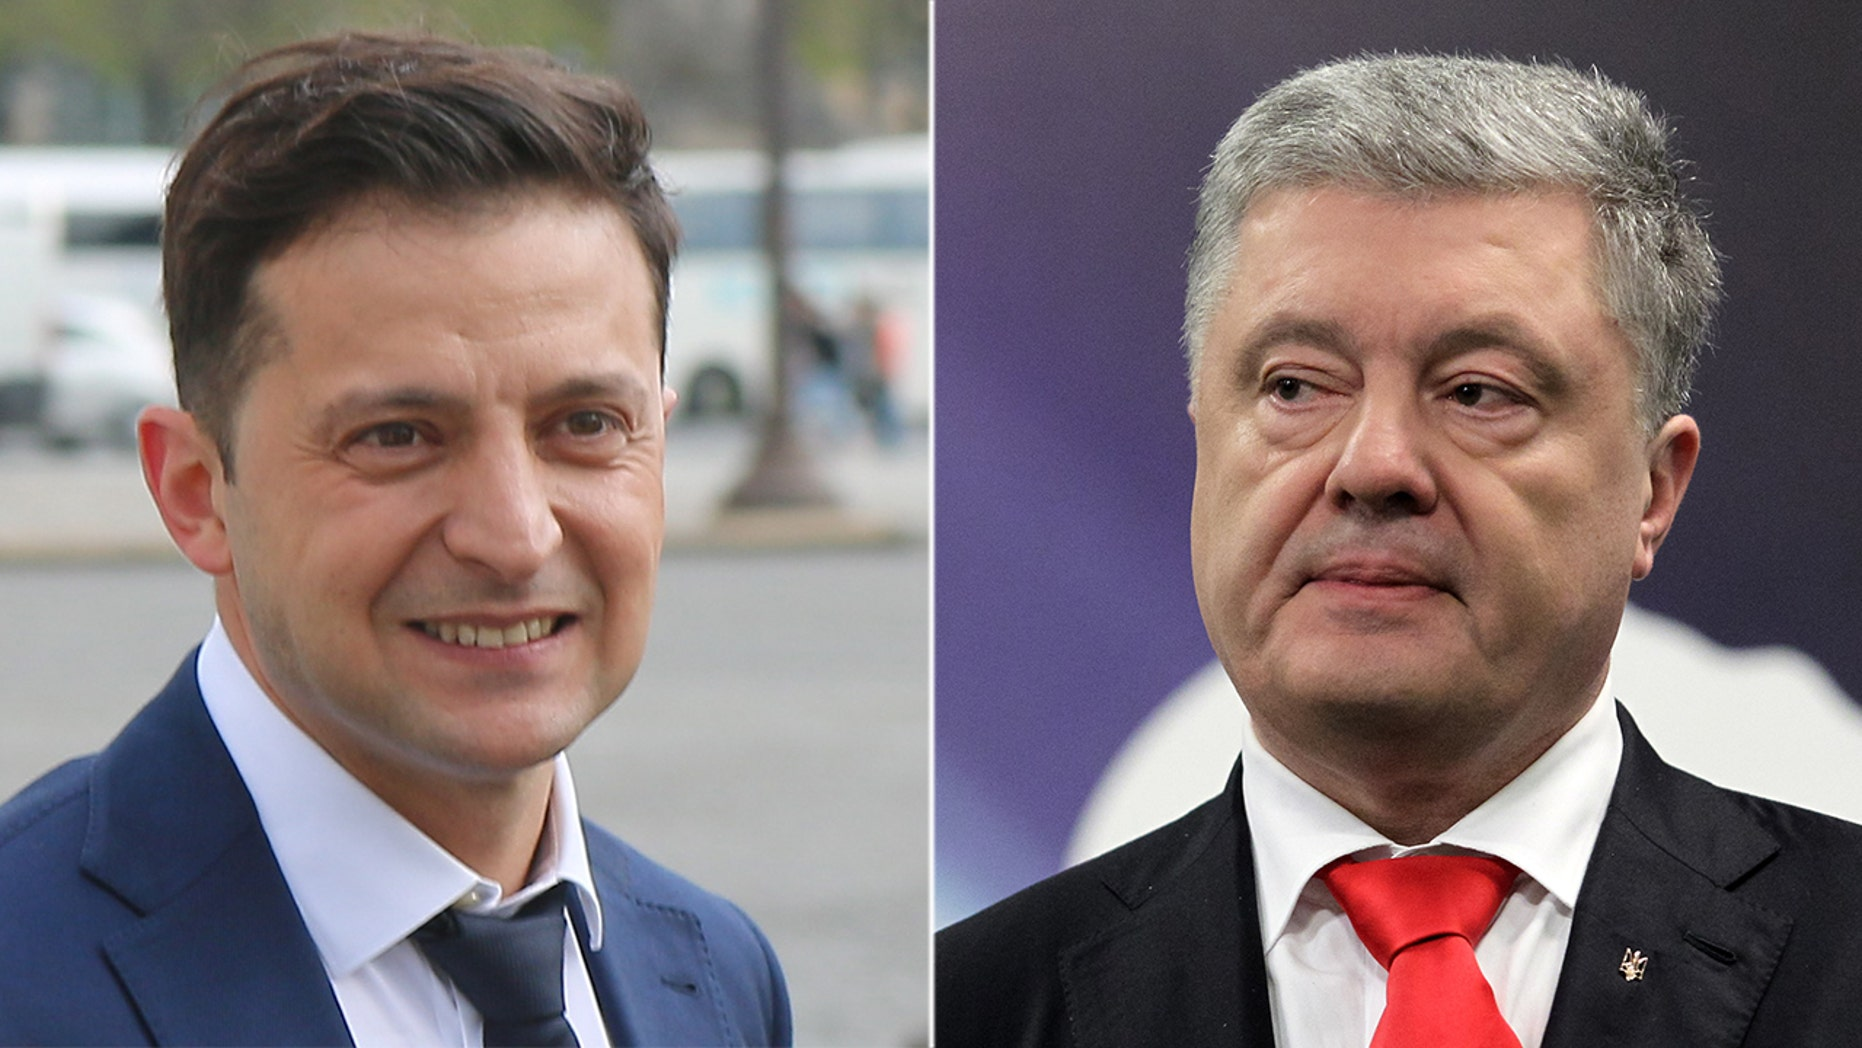 Volodymyr Zelensky, an actor with no political background, unseated Ukraine's president, Petro Poroshenko, in an election on Sunday.